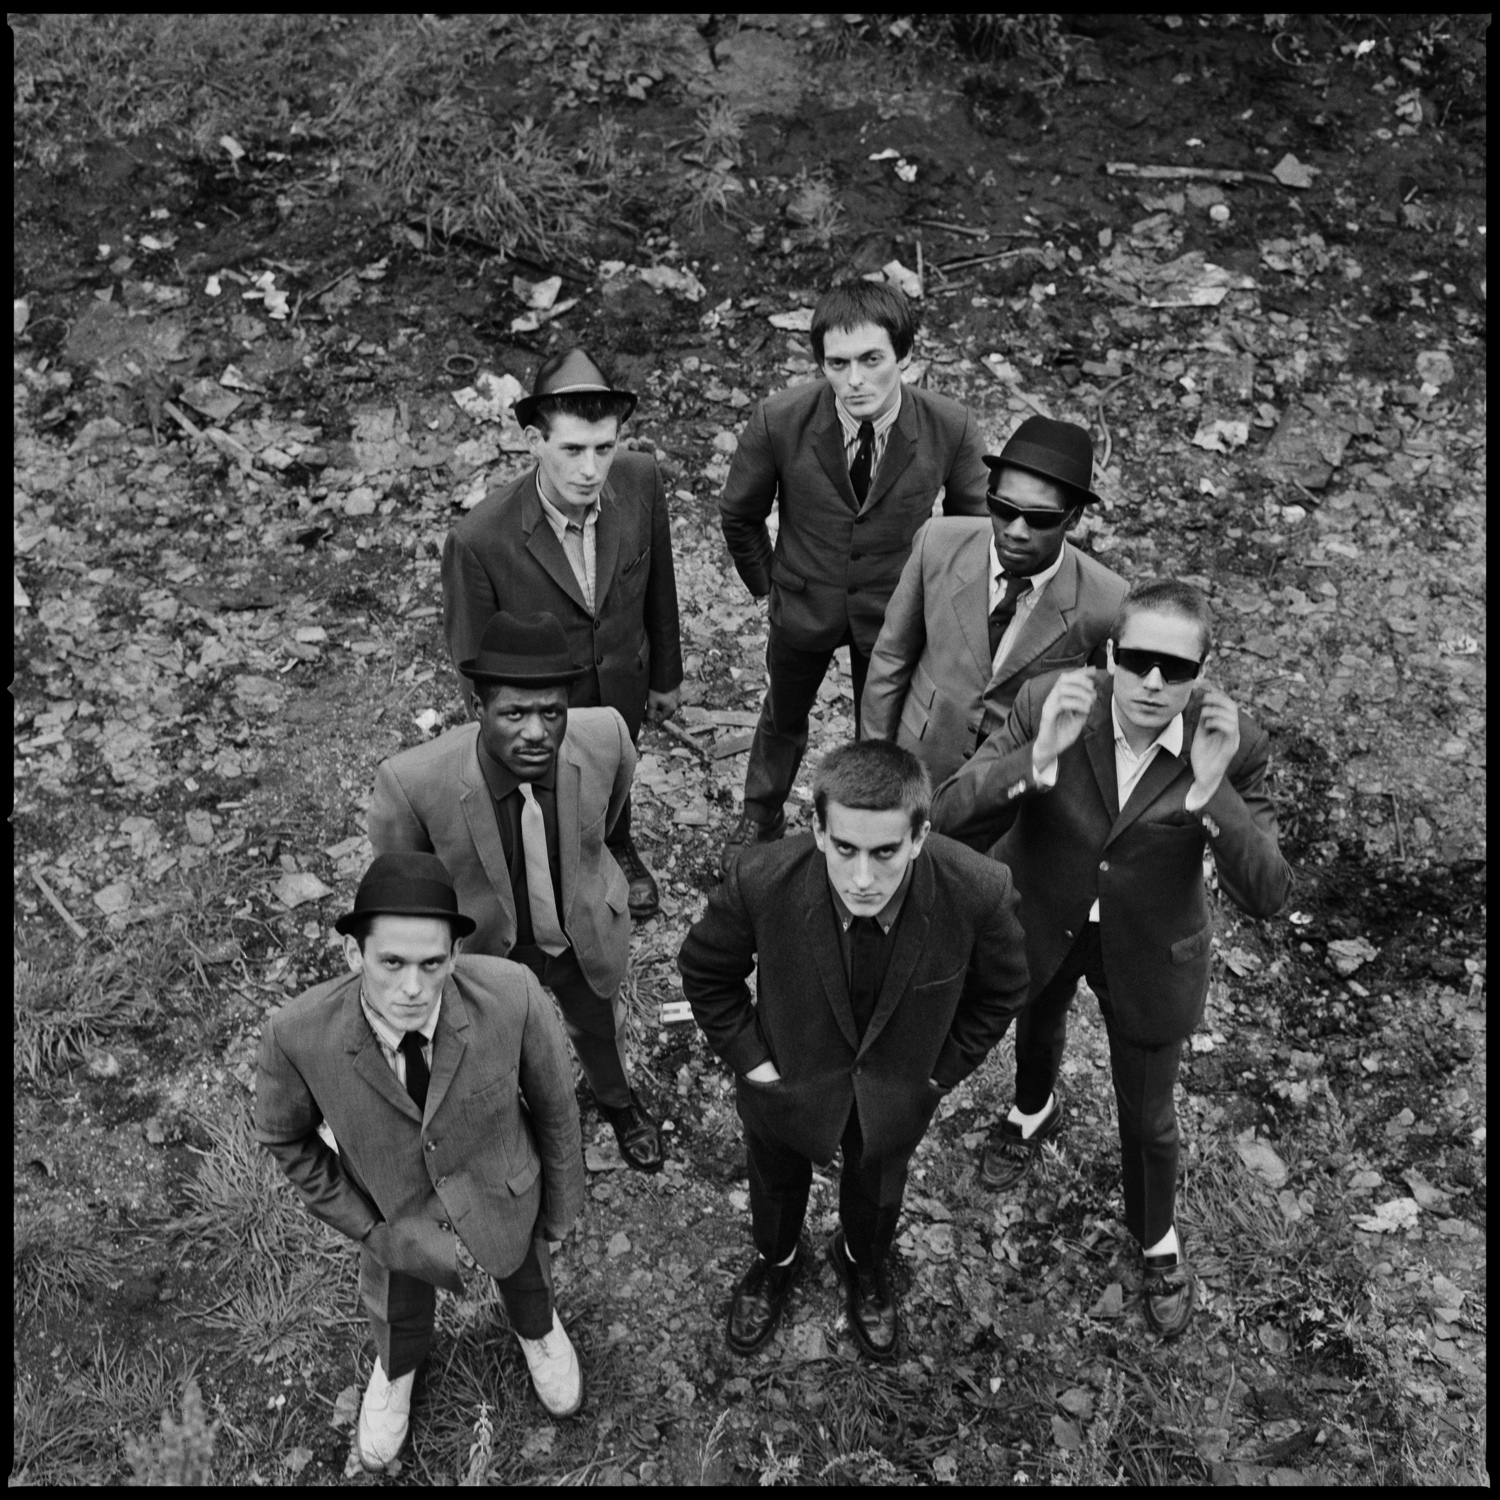 The Specials LP cover - members of the band standing in the basin looking up towards the camera. Photographed by Chalkie Davies in black and white.